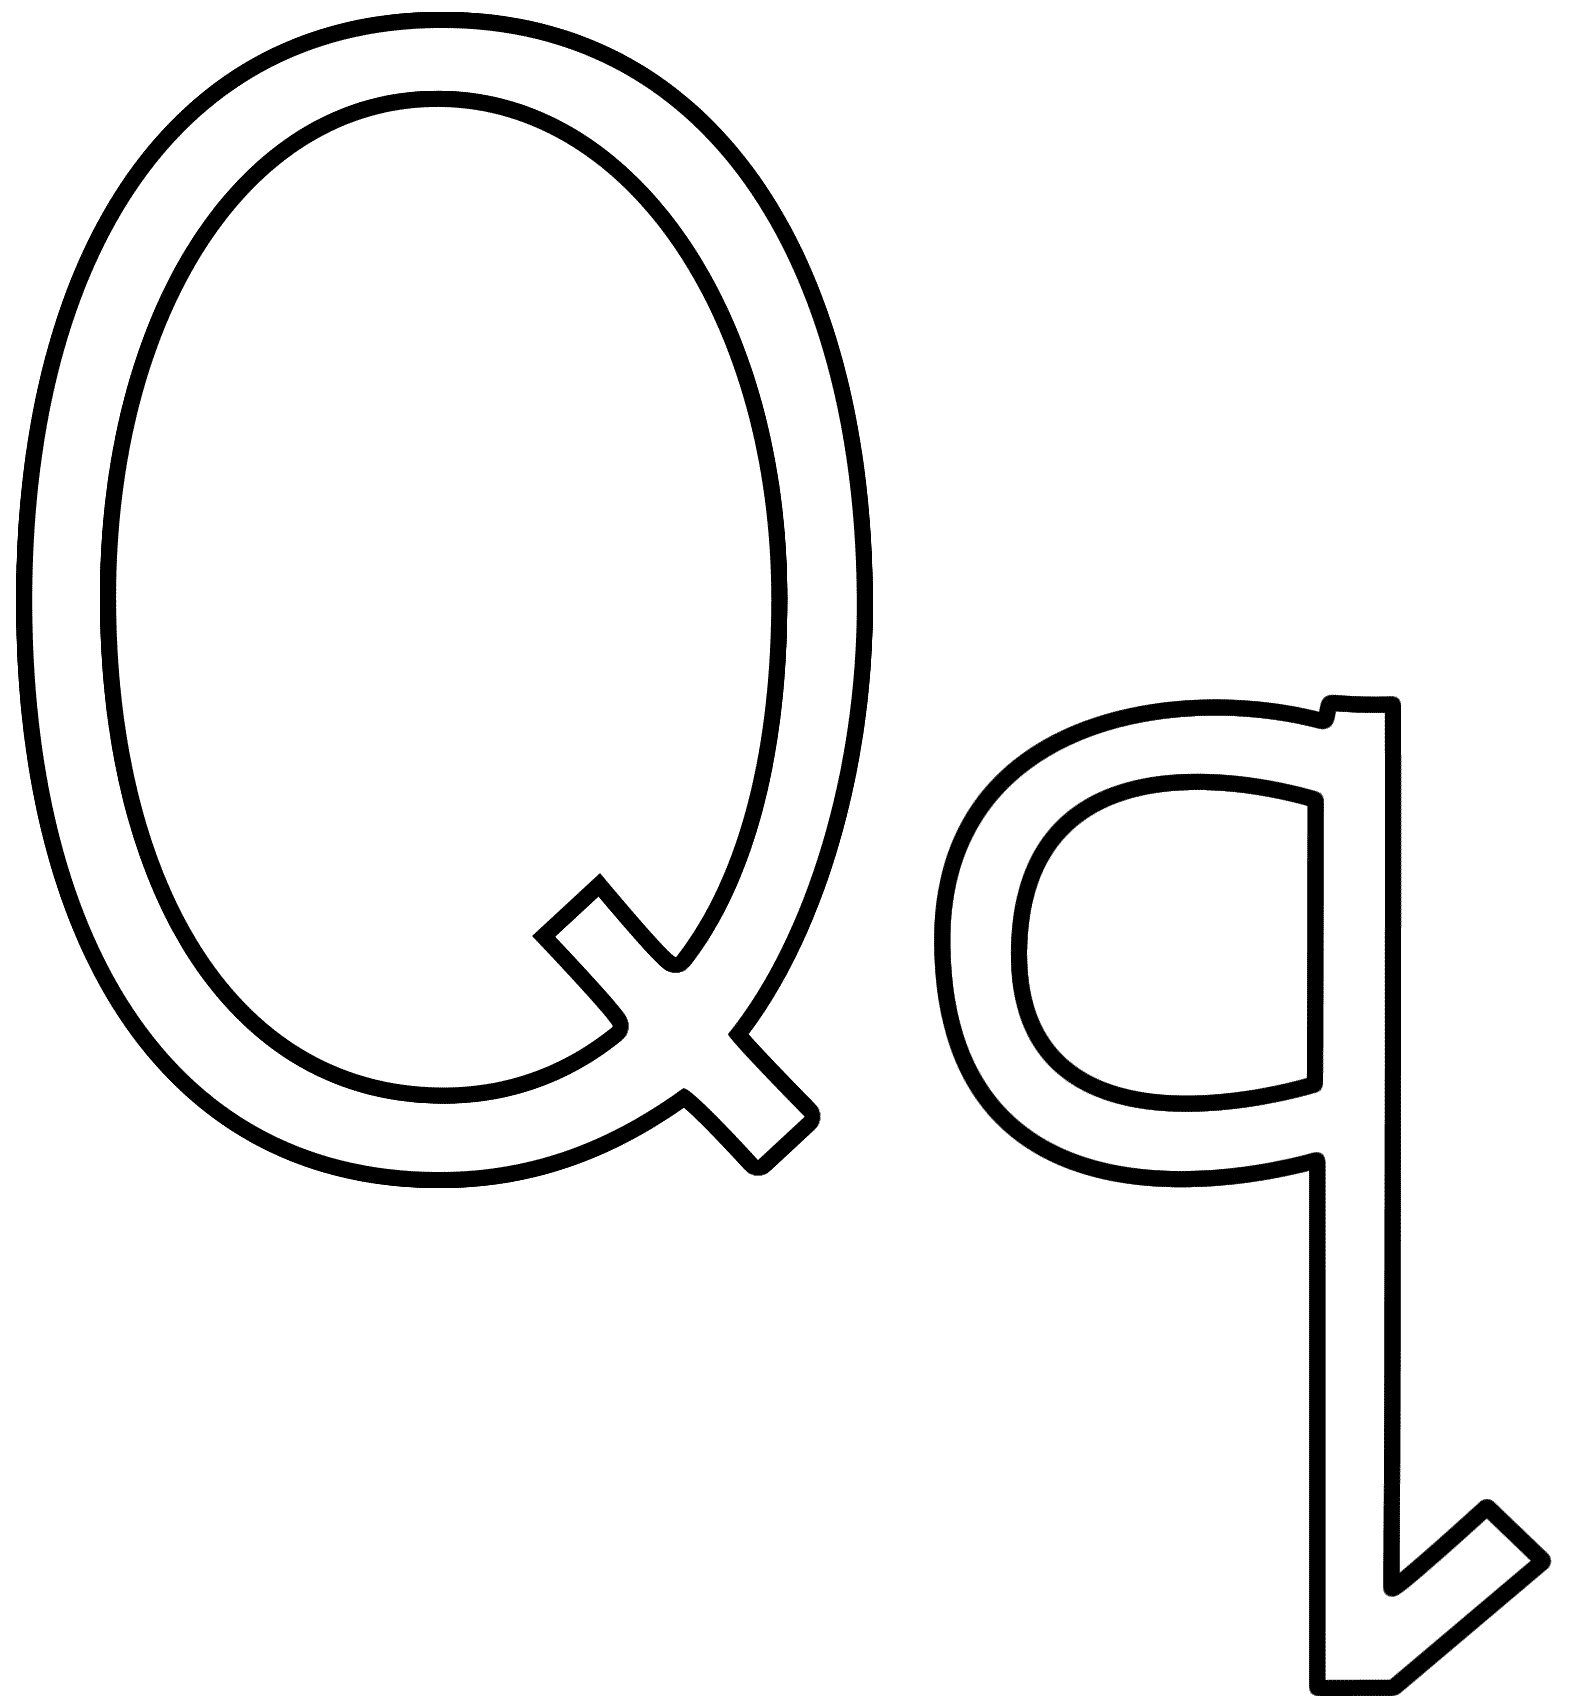 letter q coloring pages - letter q